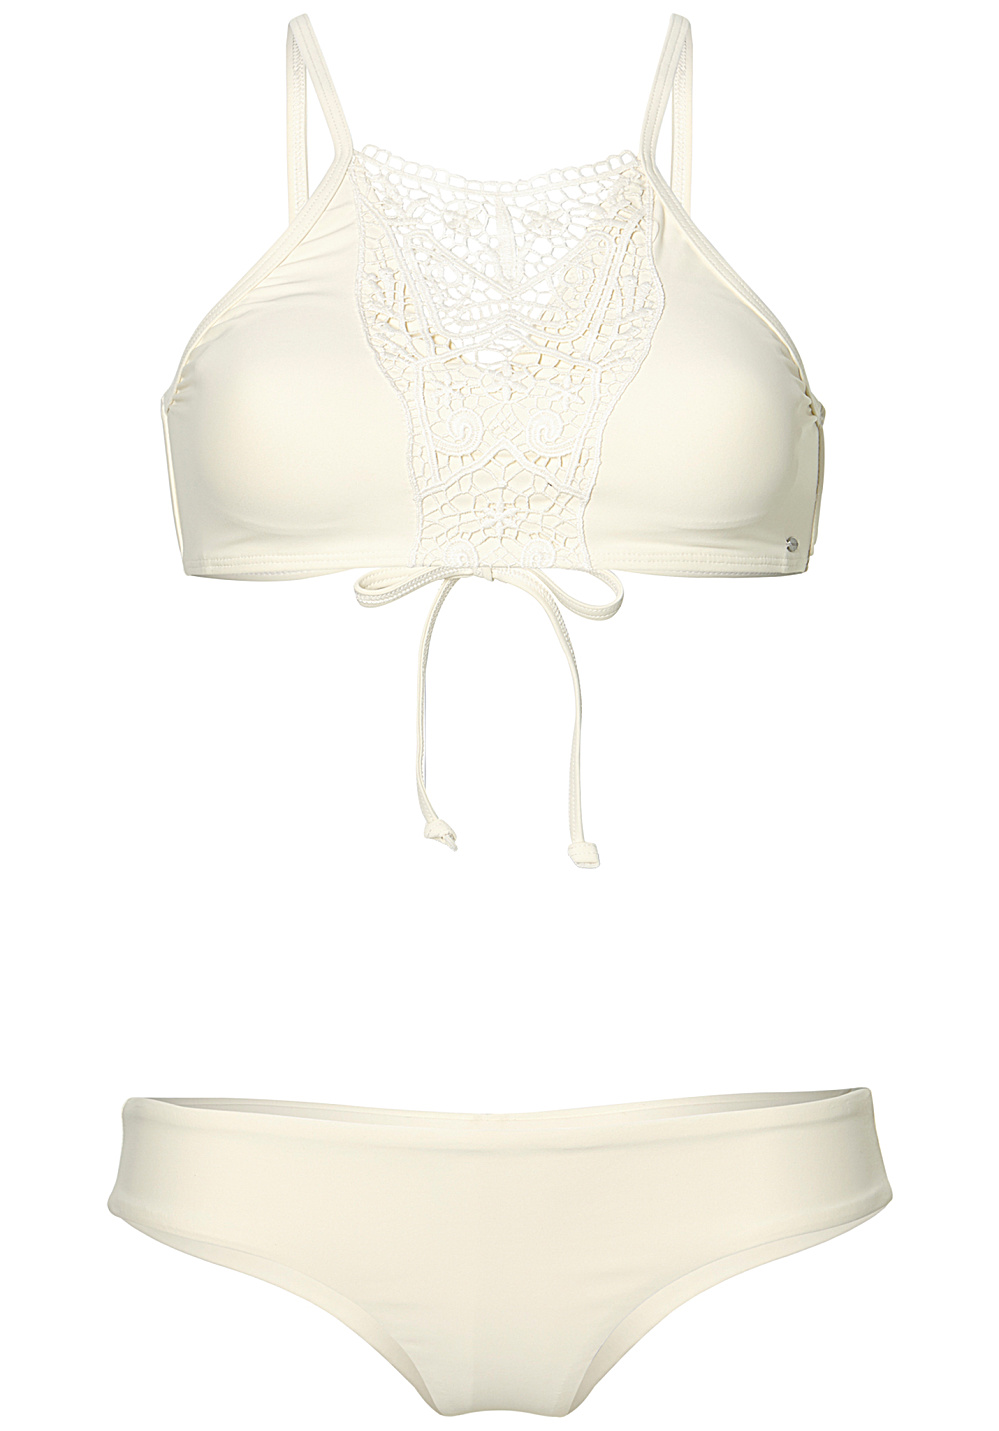 best prices meticulous dyeing processes 60% discount O'Neill Lace High Neck - Bikini Set for Women - White